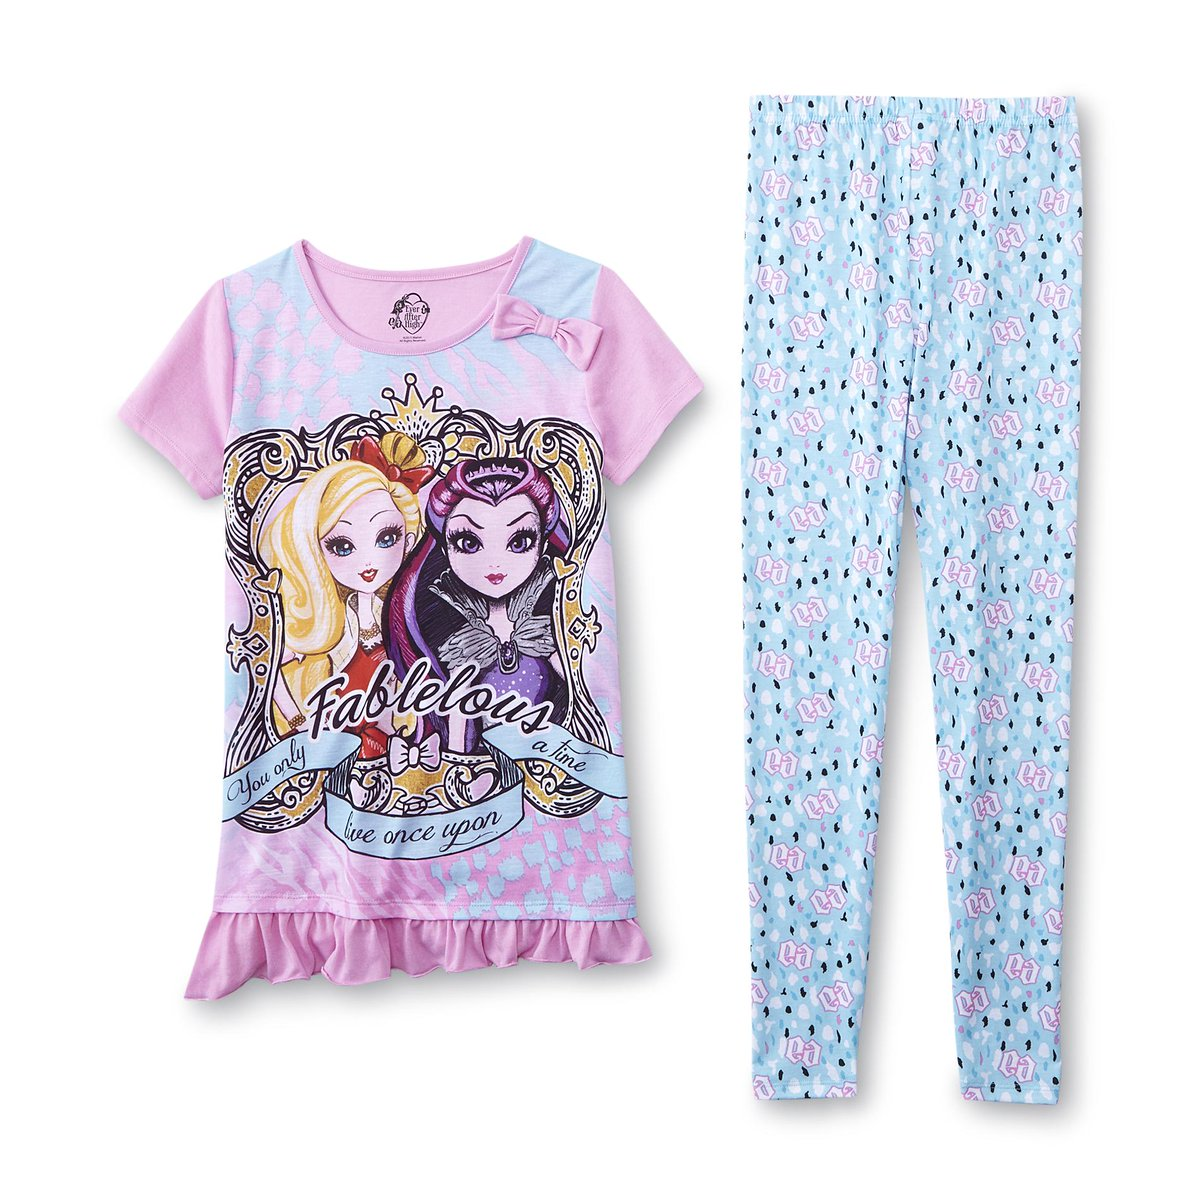 HOT! FREE Girls PJs from #Kmart! Get them now! Sell Out Risk HIGH! - http://www.pinchingyourpennies.com/hot-free-girls-pjs-from-kmart-get-them-now-sell-out-risk-high/ … #Freepjs